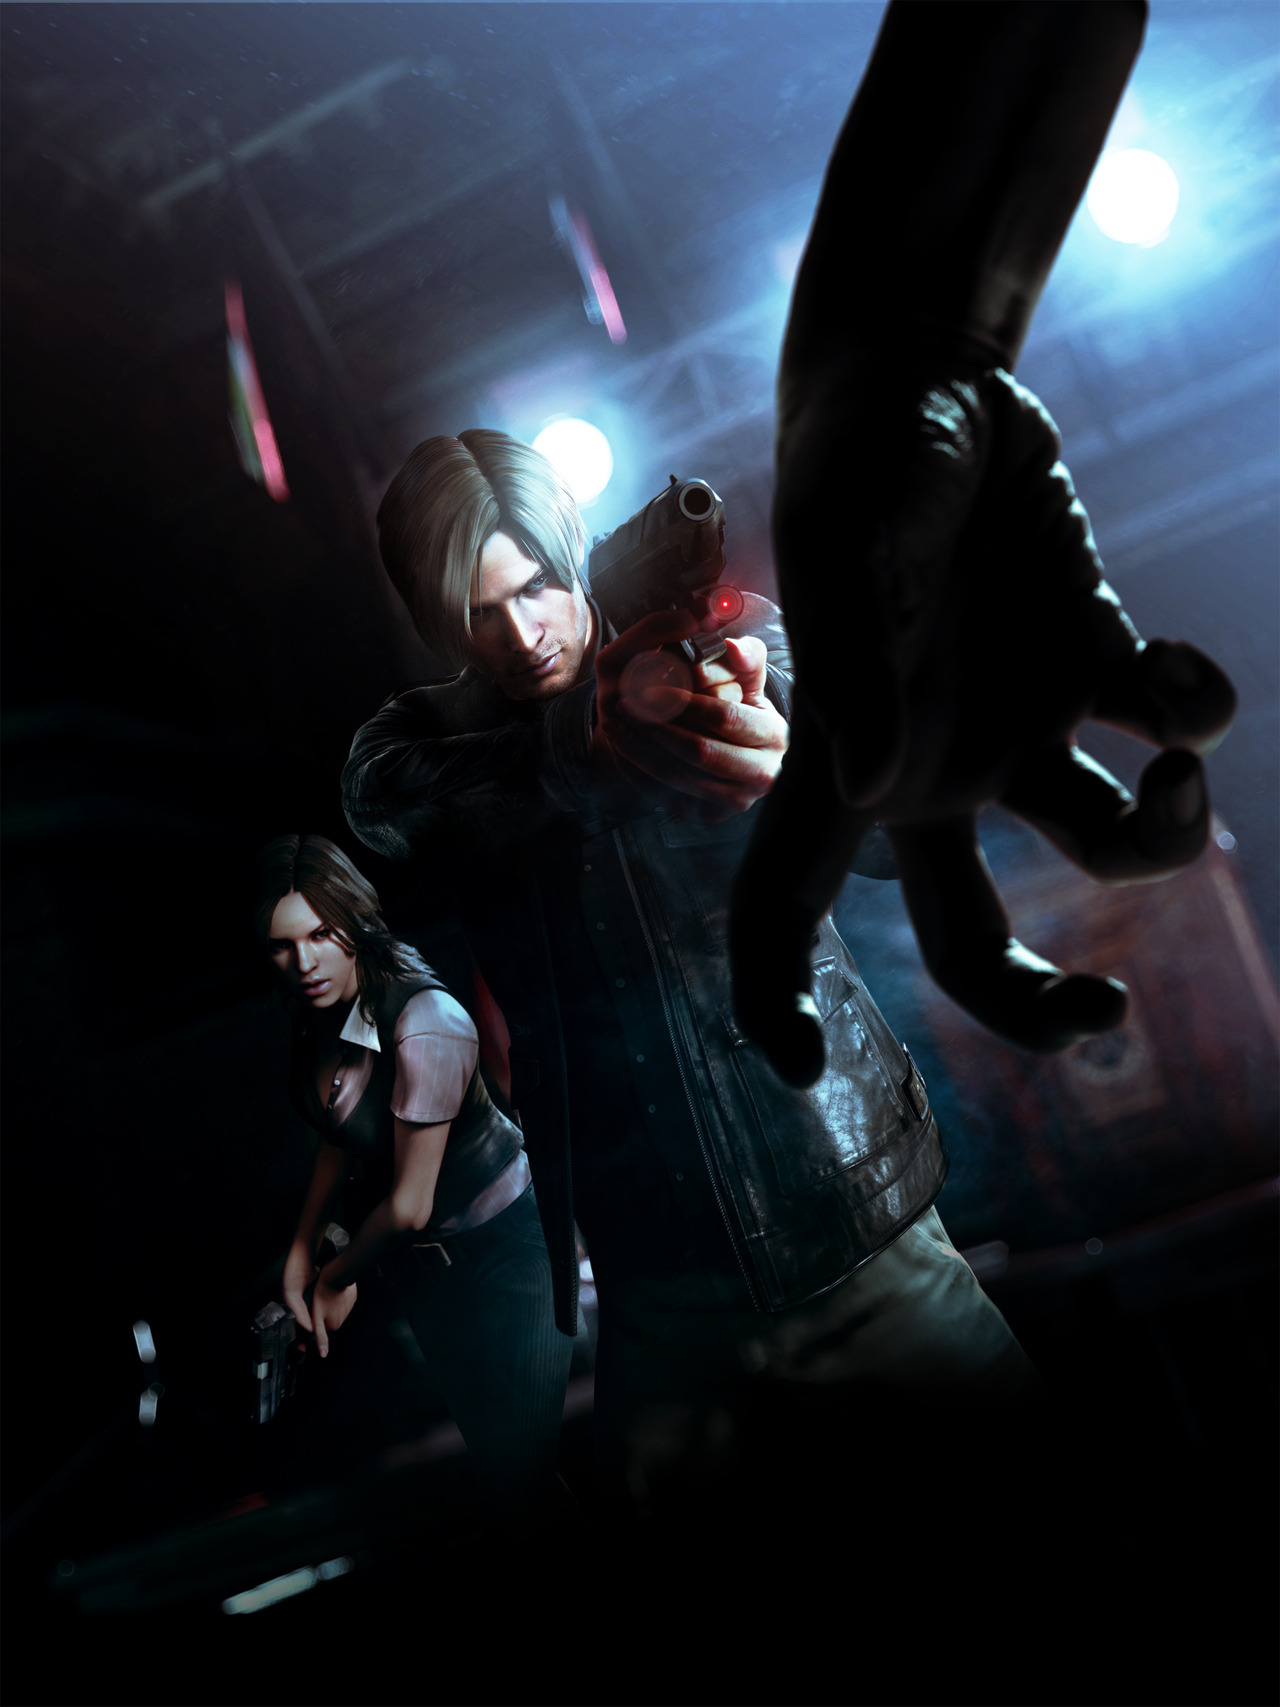 resident-evil-6-playstation-3-ps3-1327012180-001.jpg